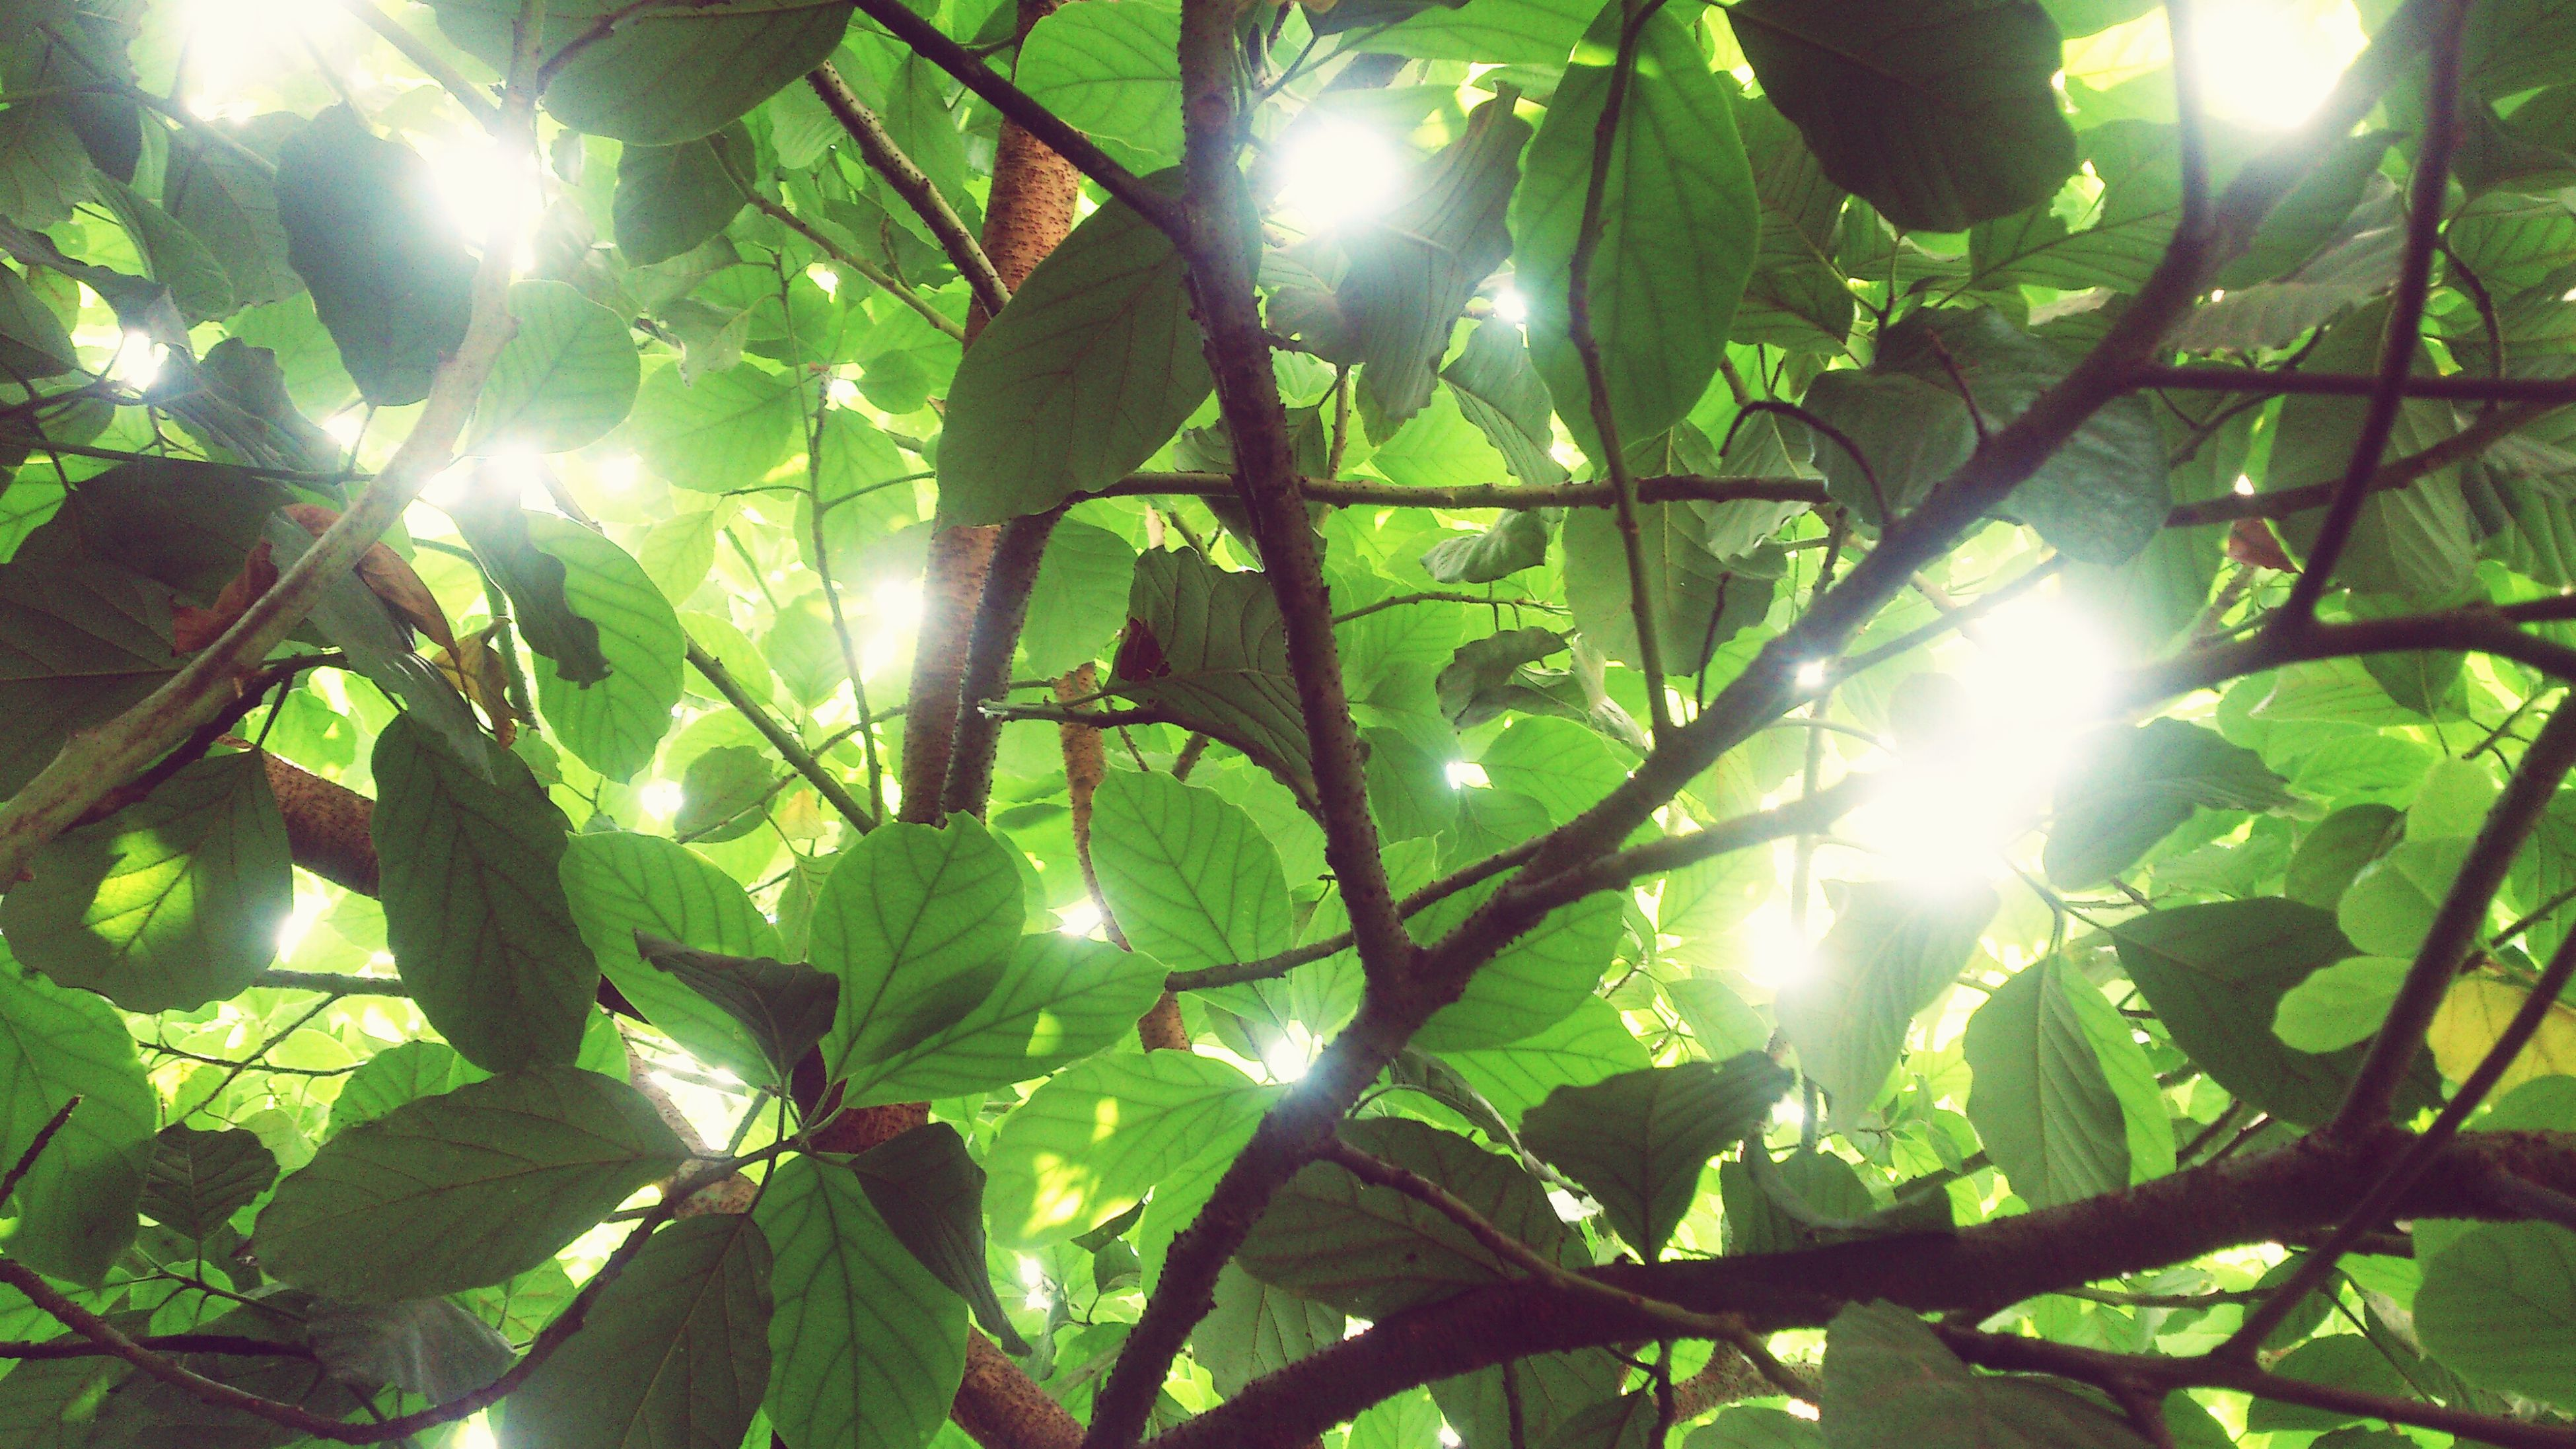 sun, sunbeam, low angle view, lens flare, sunlight, leaf, growth, tree, nature, branch, bright, green color, sunny, close-up, beauty in nature, plant, day, streaming, no people, outdoors